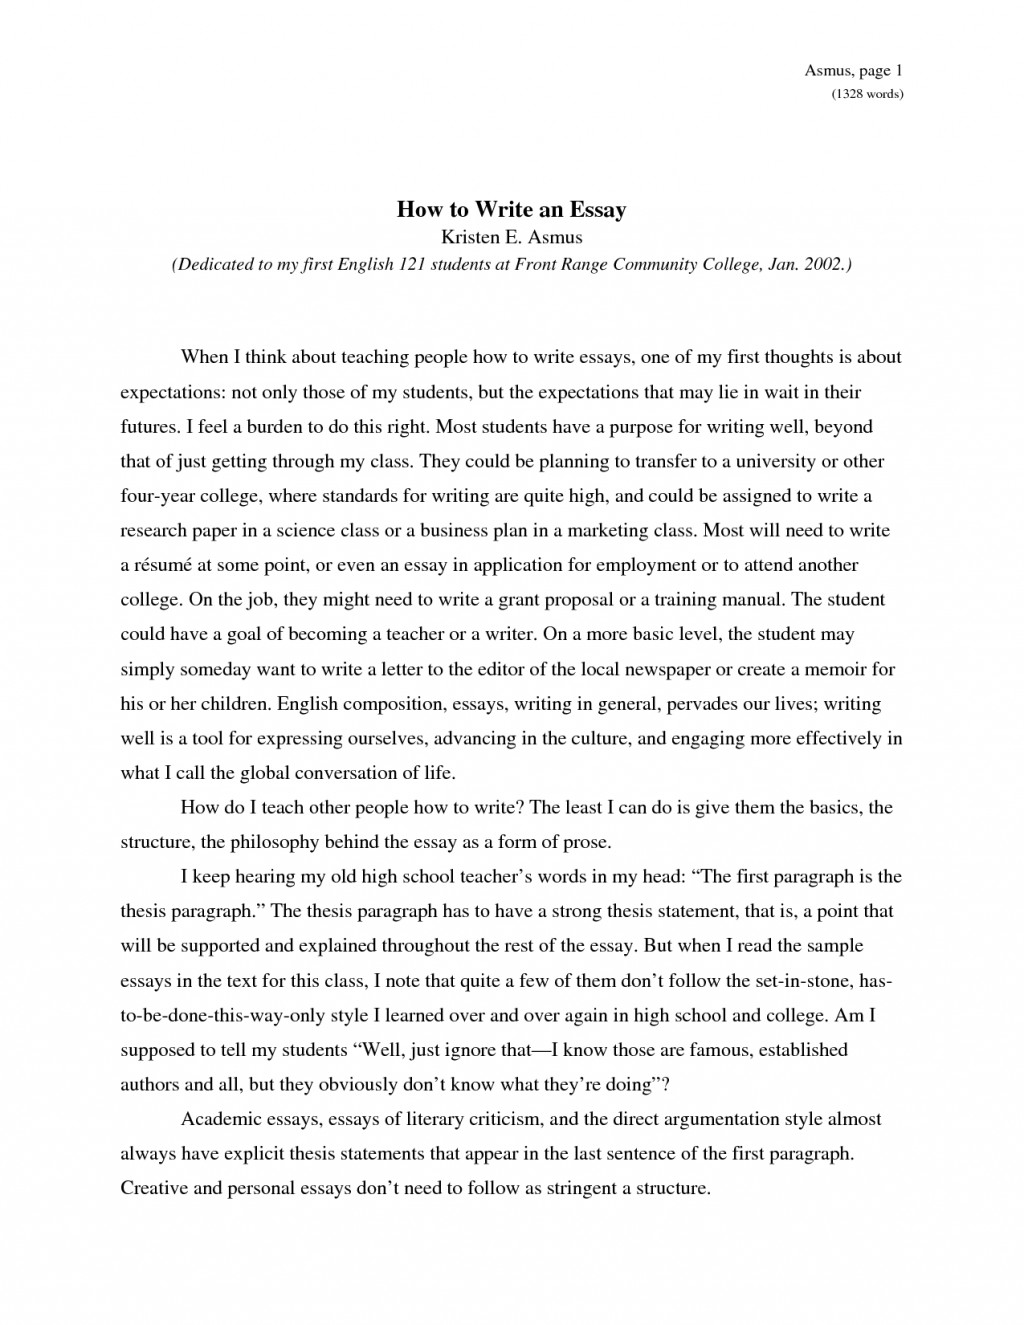 005 How To Essays Essay Example Write An Obfuscata Sample Of L Excellent Expository For 4th Grade Make Longer With Words Start Introduction Large